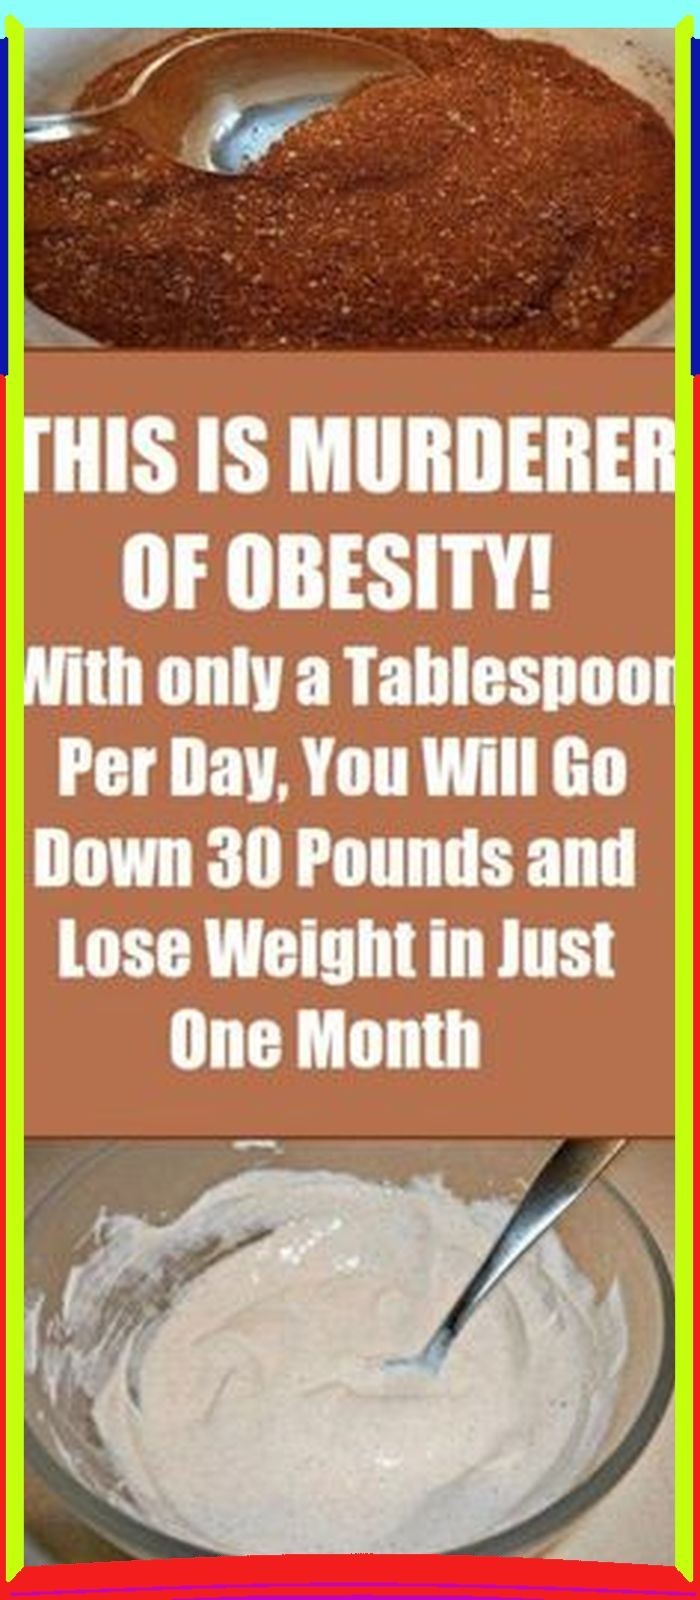 THIS IS THE MURDERER OF OBESITY, WITH ONLY A TABLE